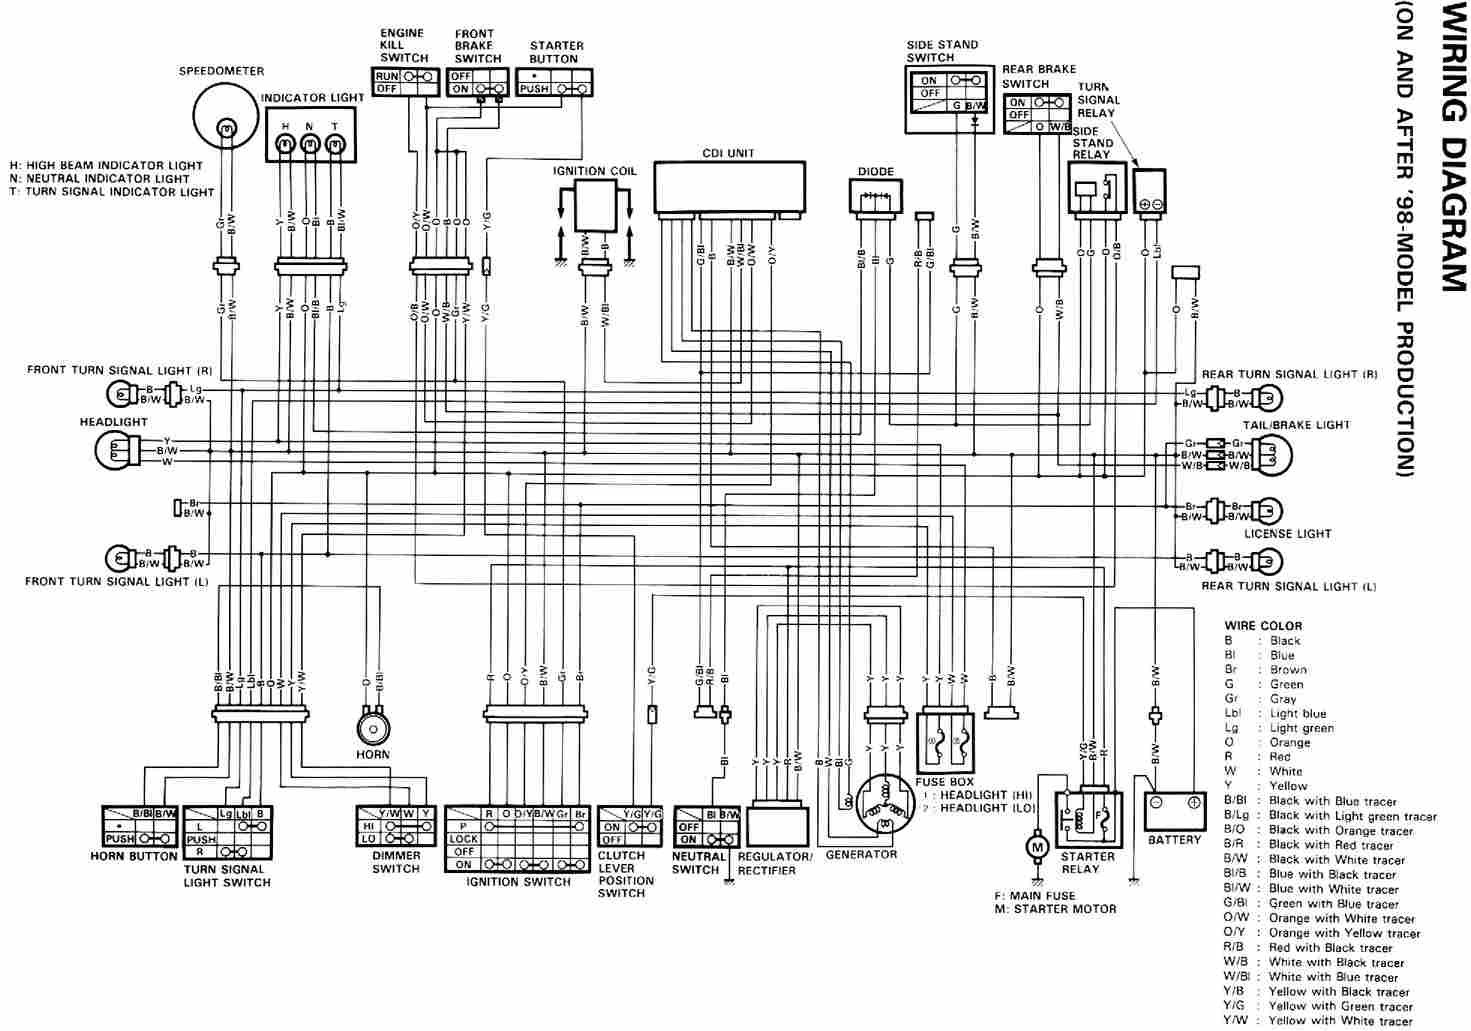 Suzuki+DR650+1998+Motorcycle+Wiring+Diagram international engine diagrams international hvac diagram \u2022 free 1993 international 4900 wiring diagram at readyjetset.co